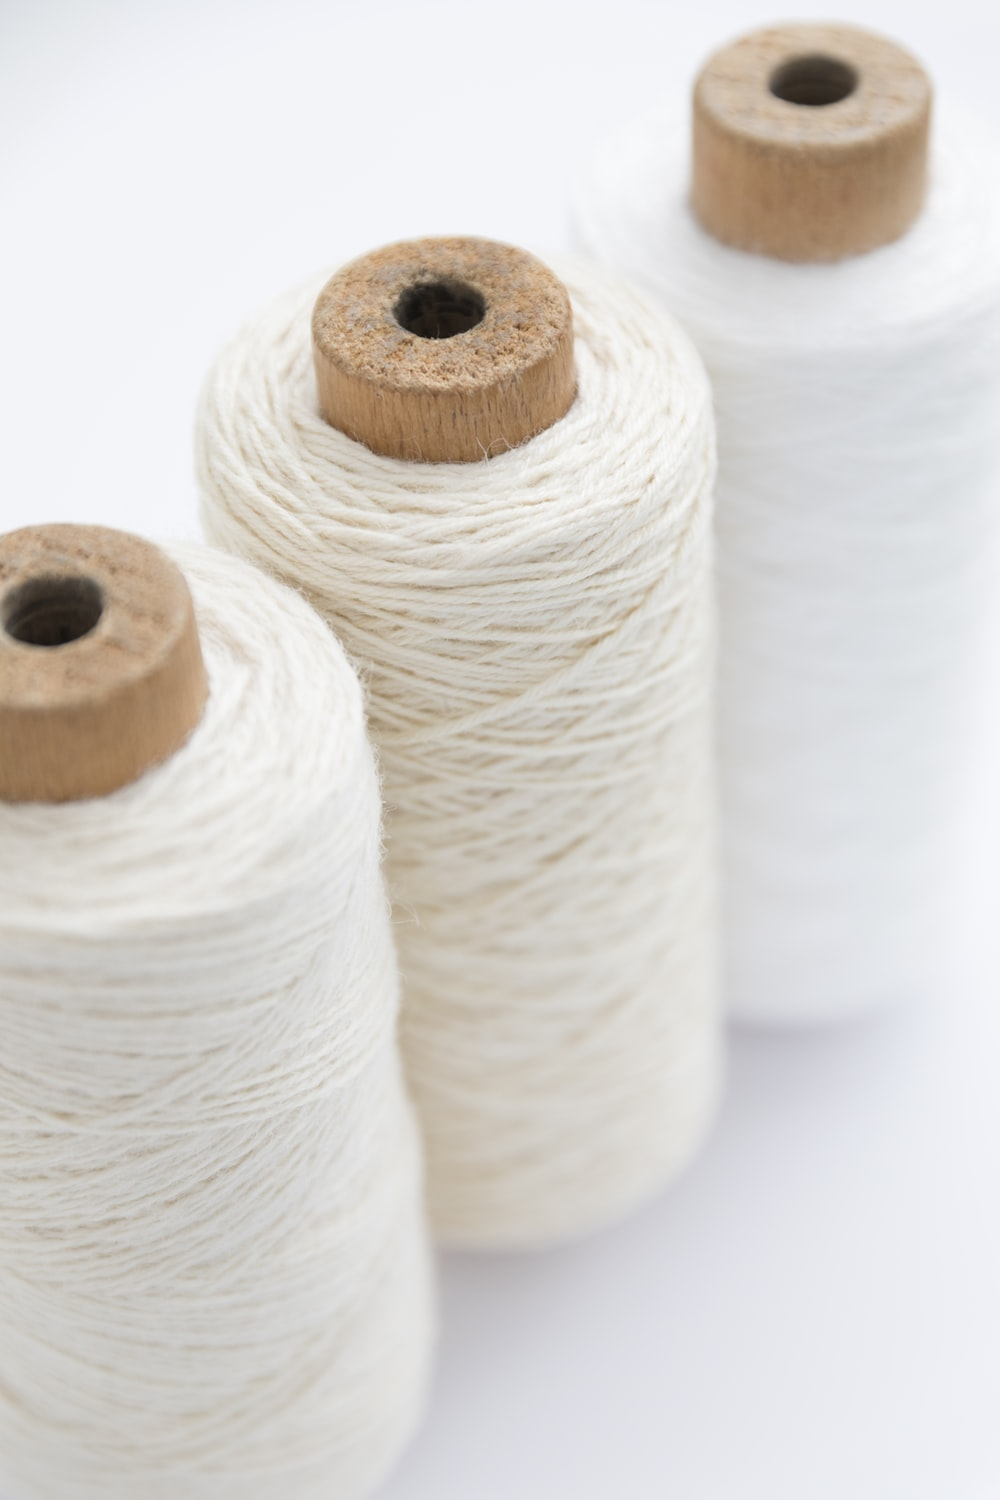 three spools of white threads